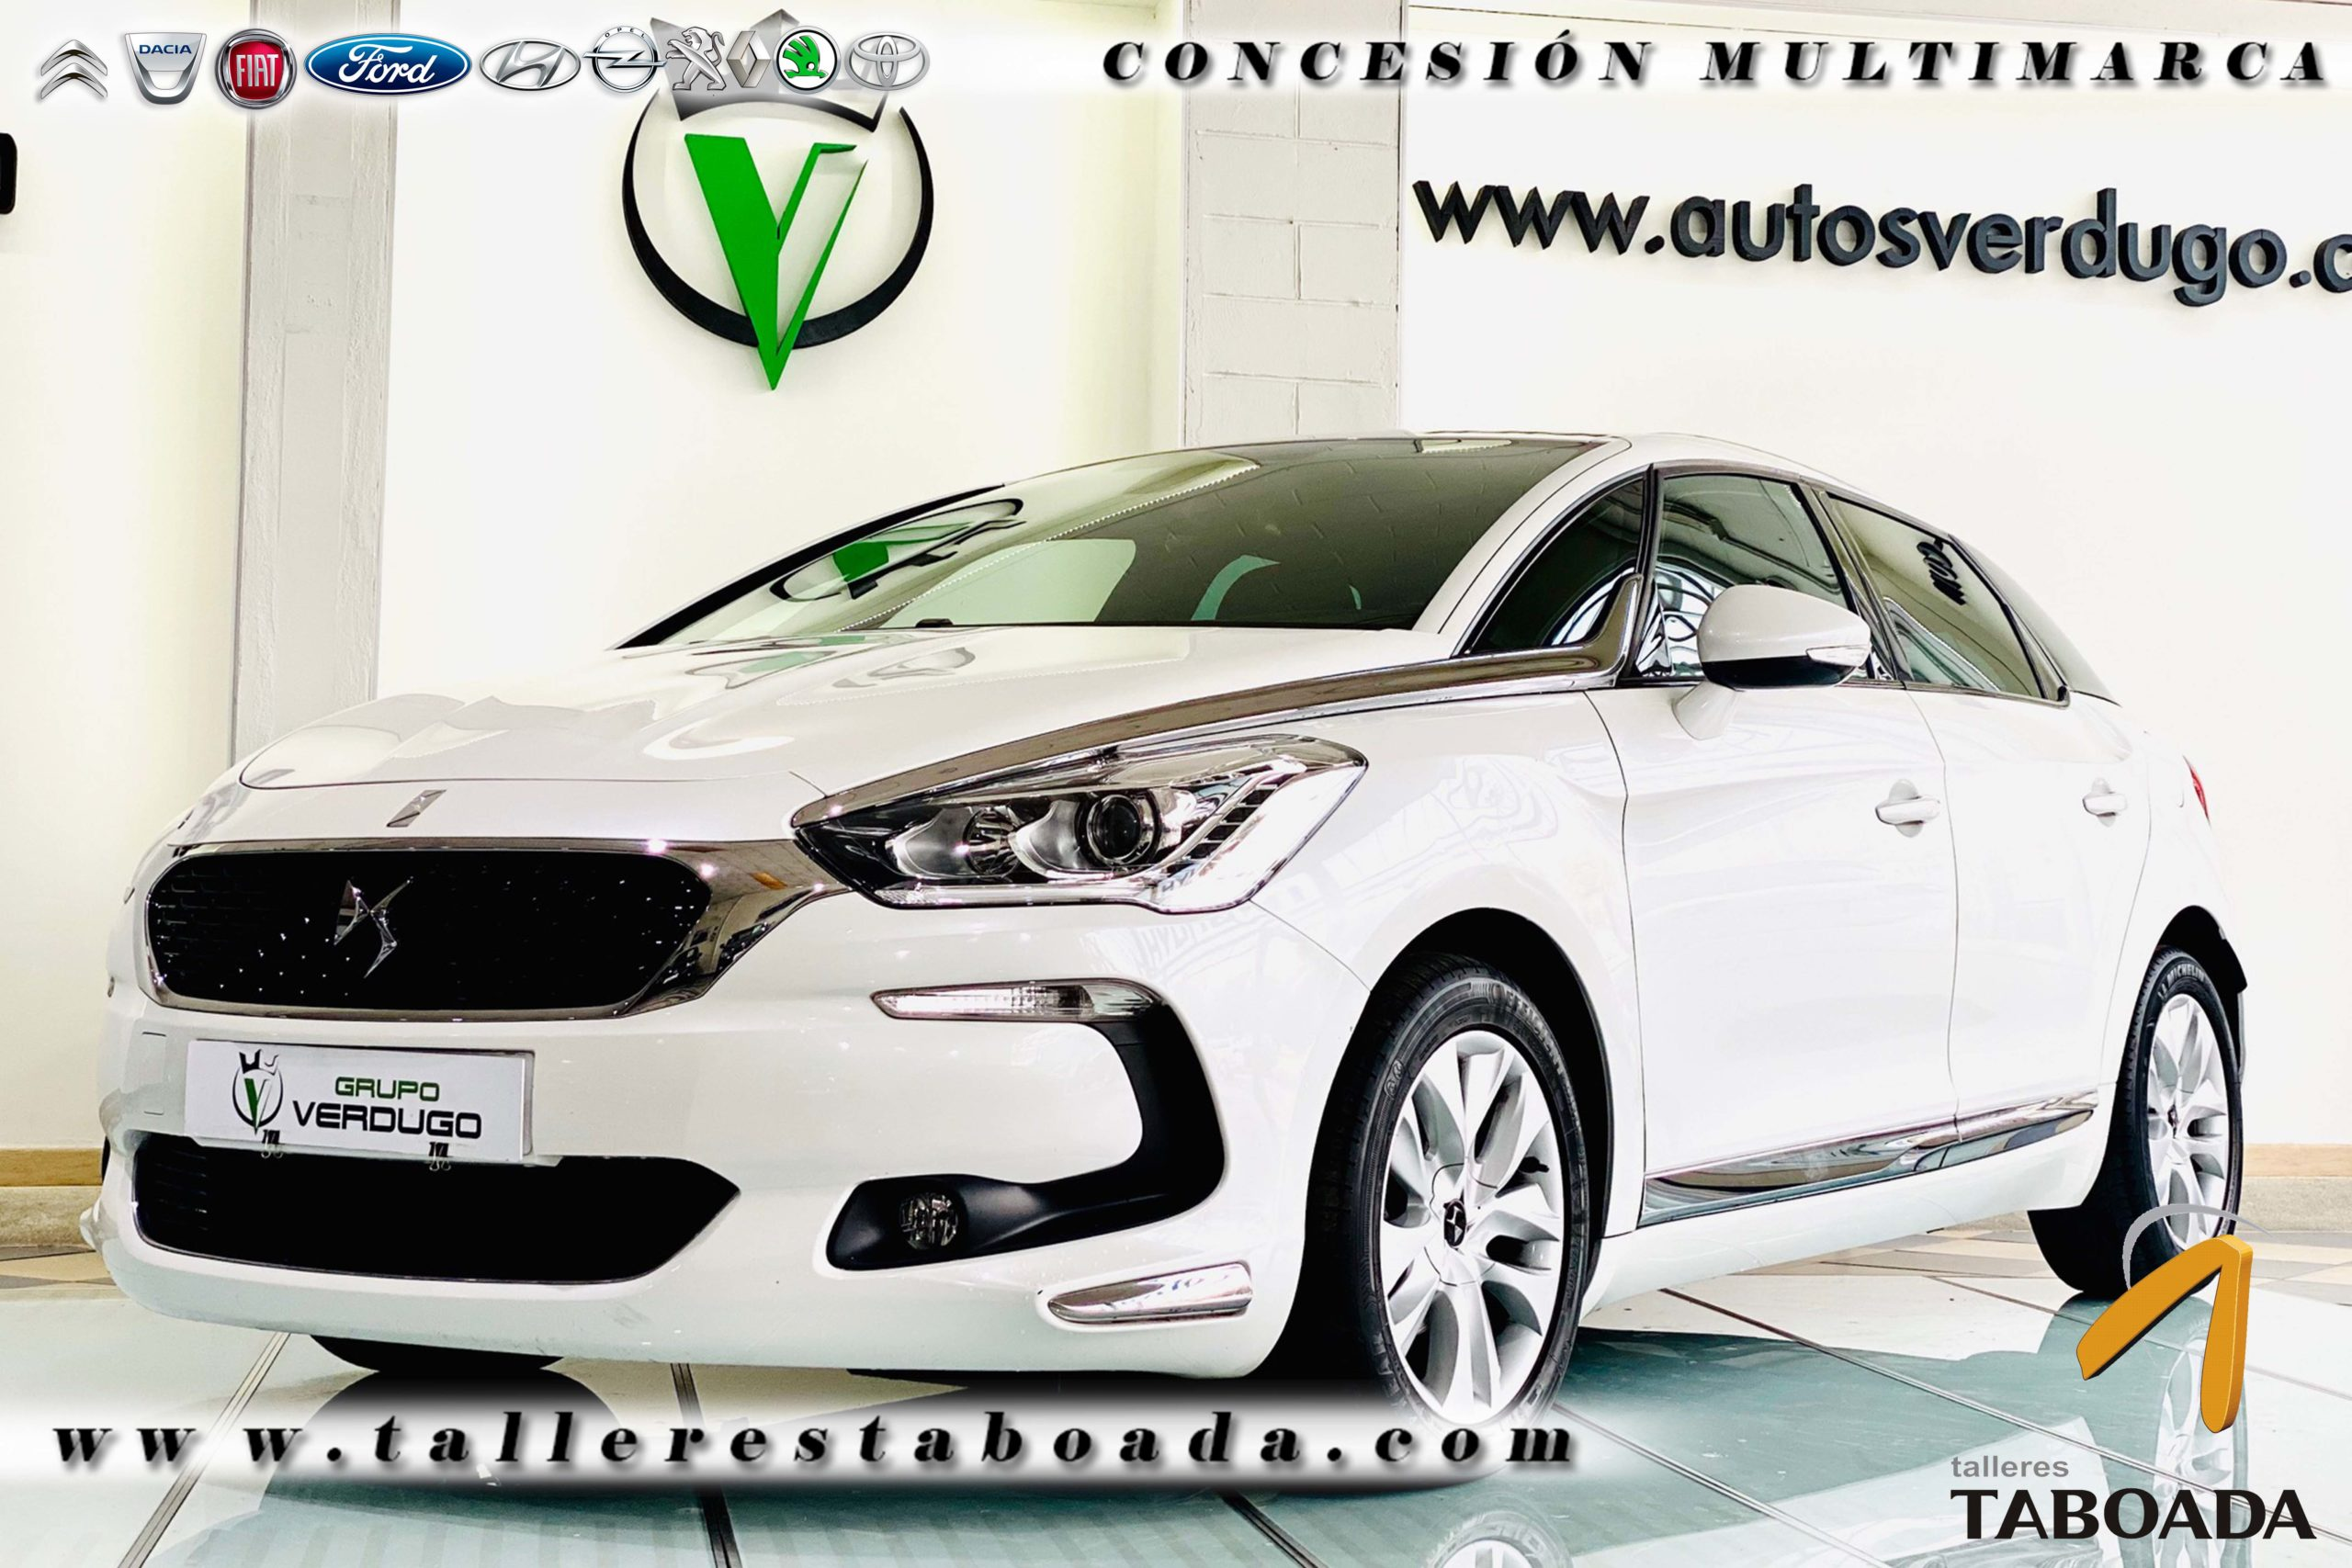 citroen_ds5_taboada_4